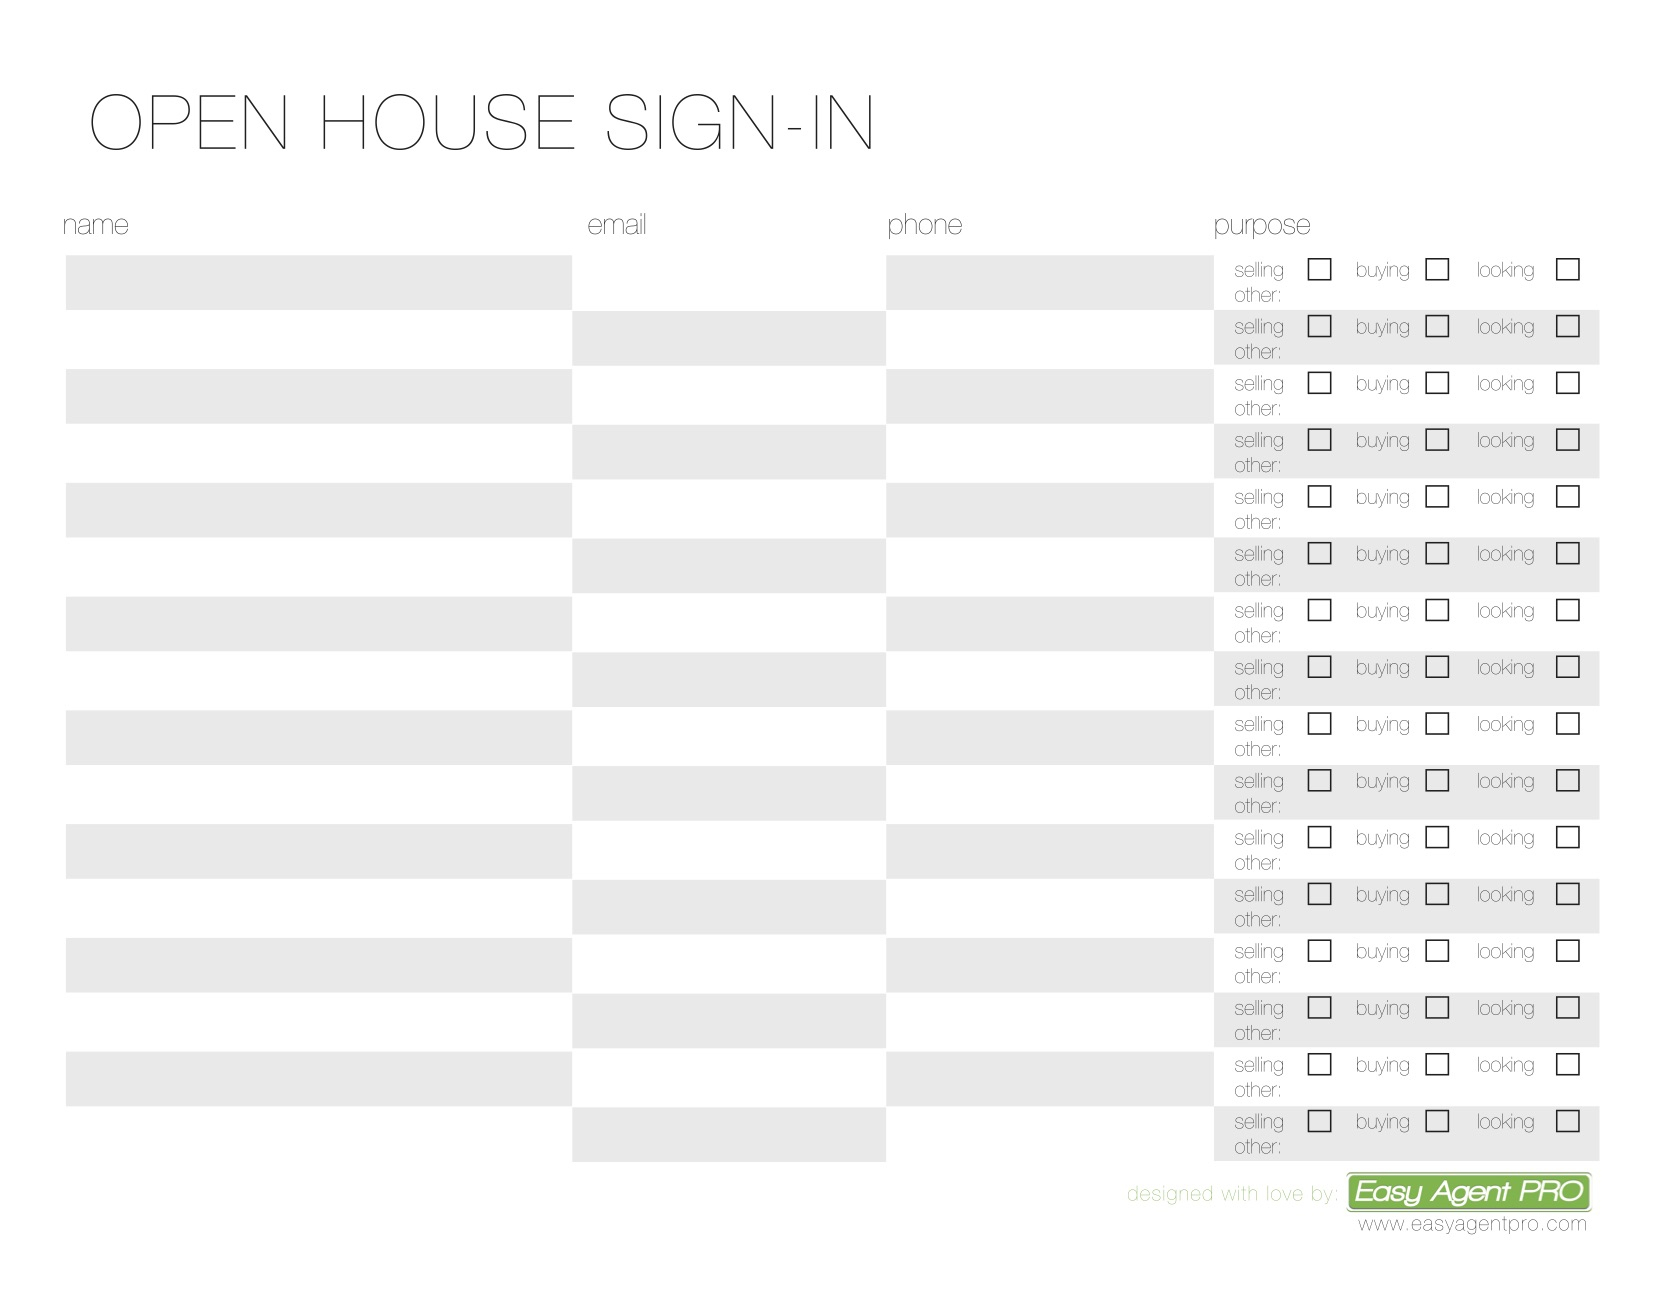 Open House Sign In Sheet Printable Templates (Free & Ready For Use) - Free Printable Sign In Sheet